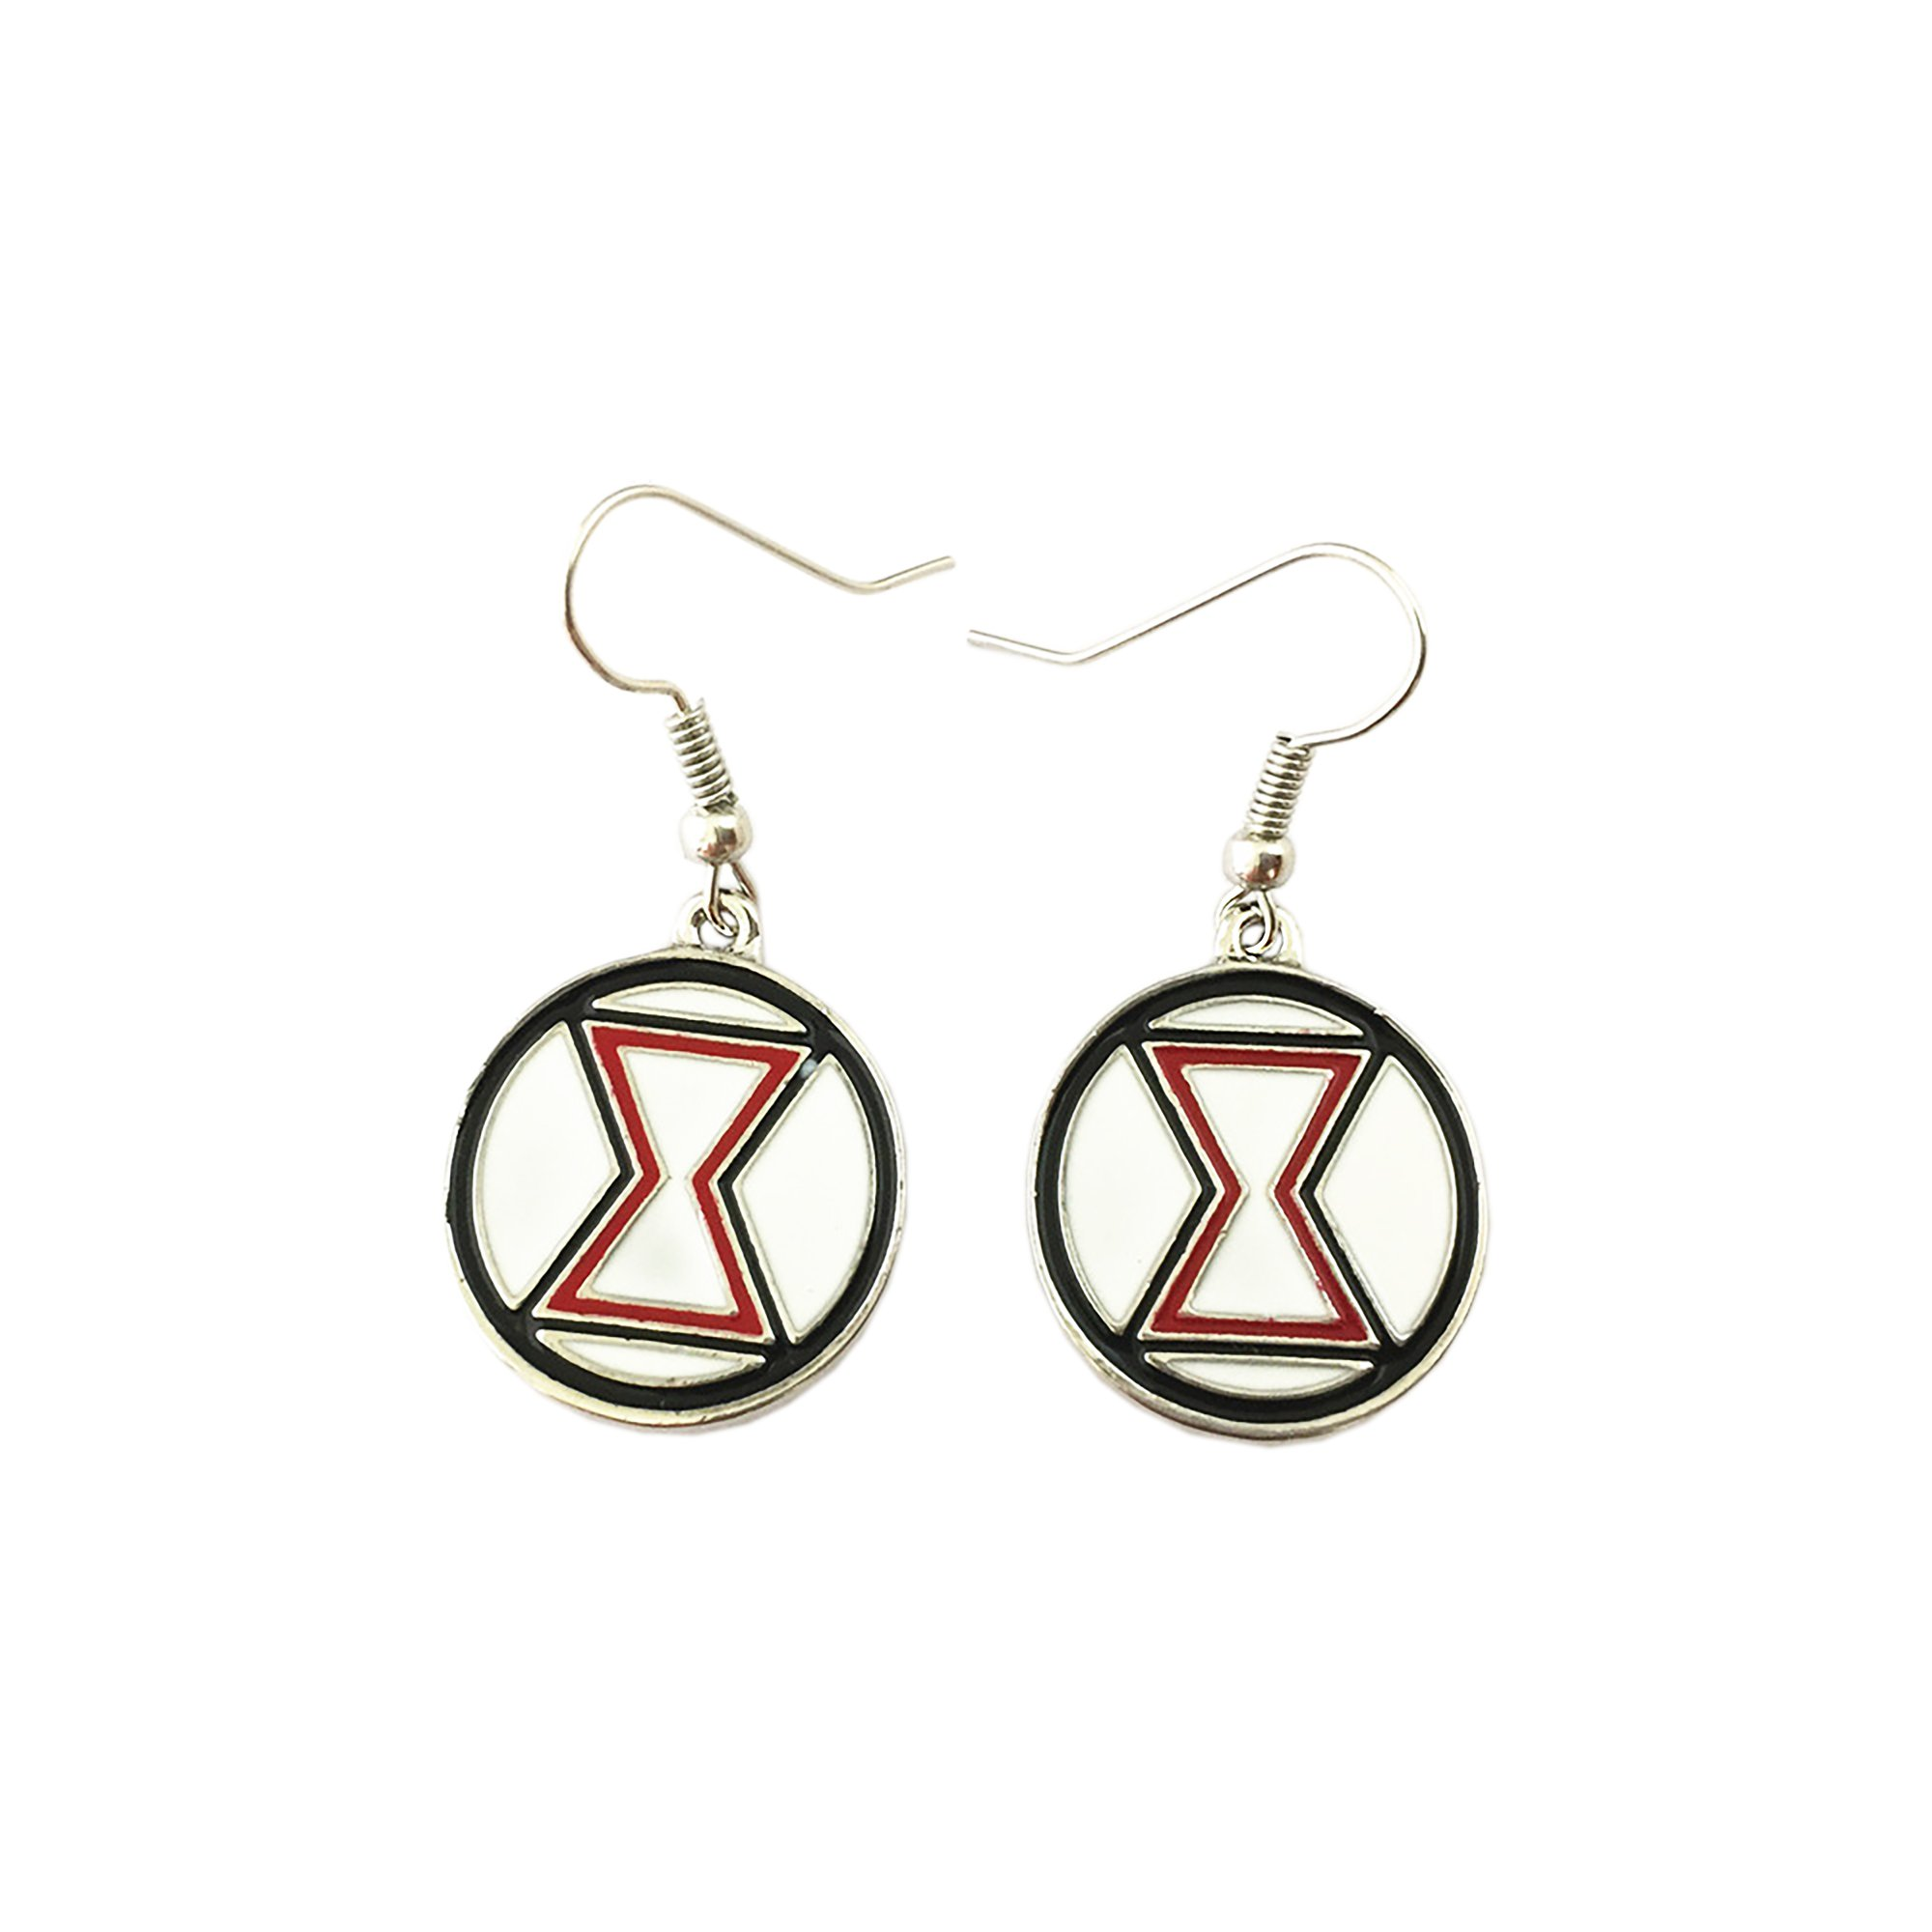 Outlander Marvel Black Widow Color Logo Earring Dangles In Gift Box From